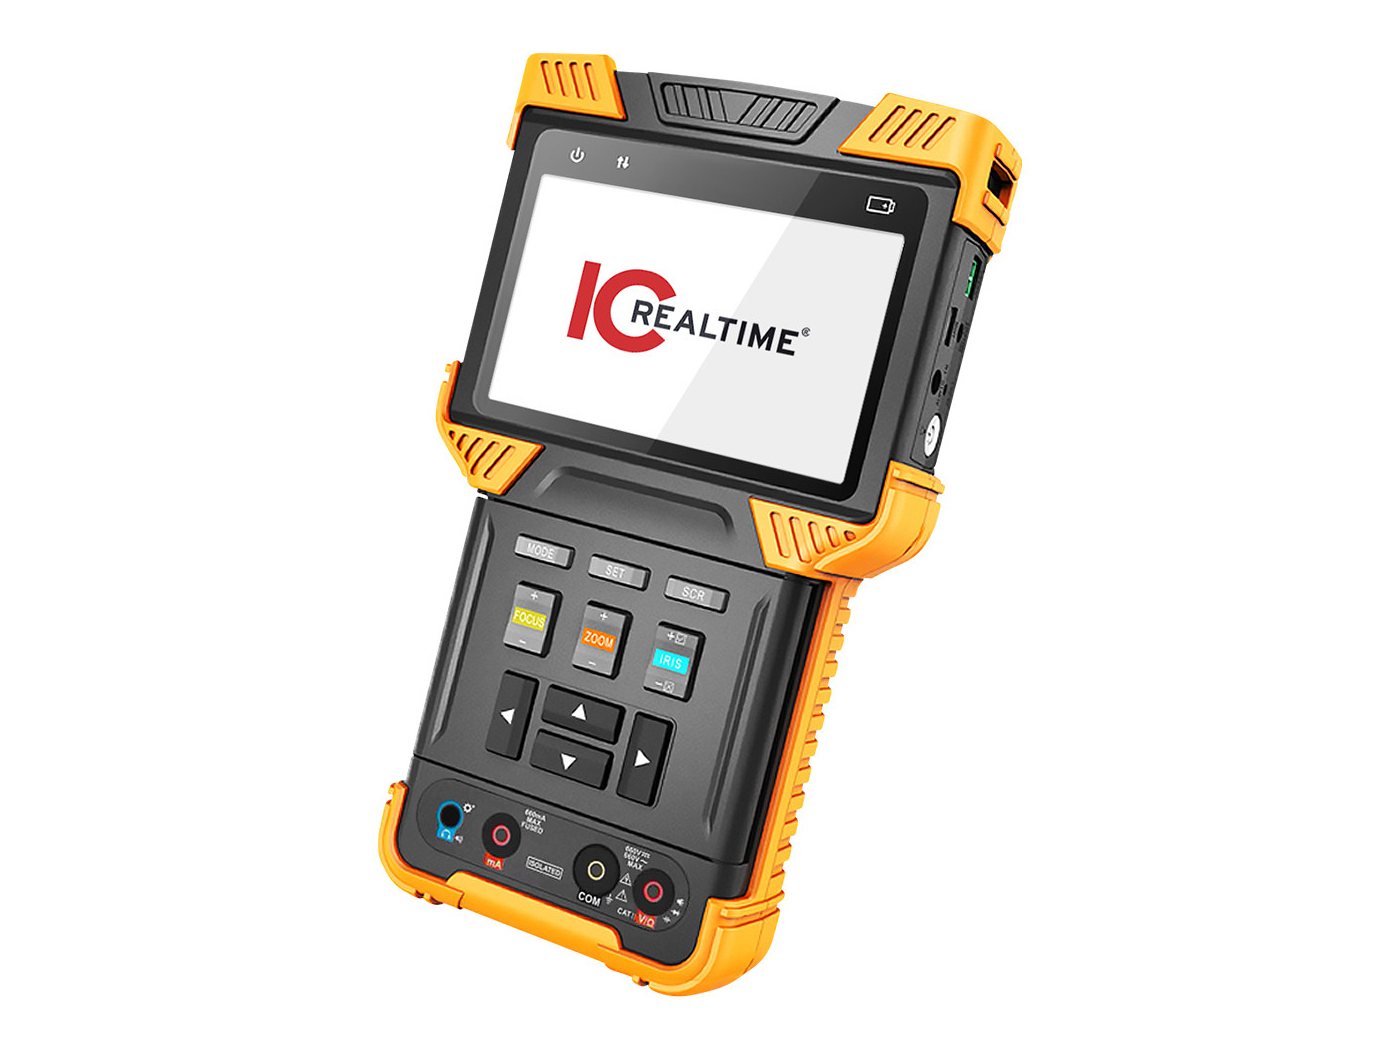 ITM-9000-V3 HD AVS/AHD/TVI/CVBS/IP Supported Multi-Function Test Tool With 4in Screen by ICRealtime